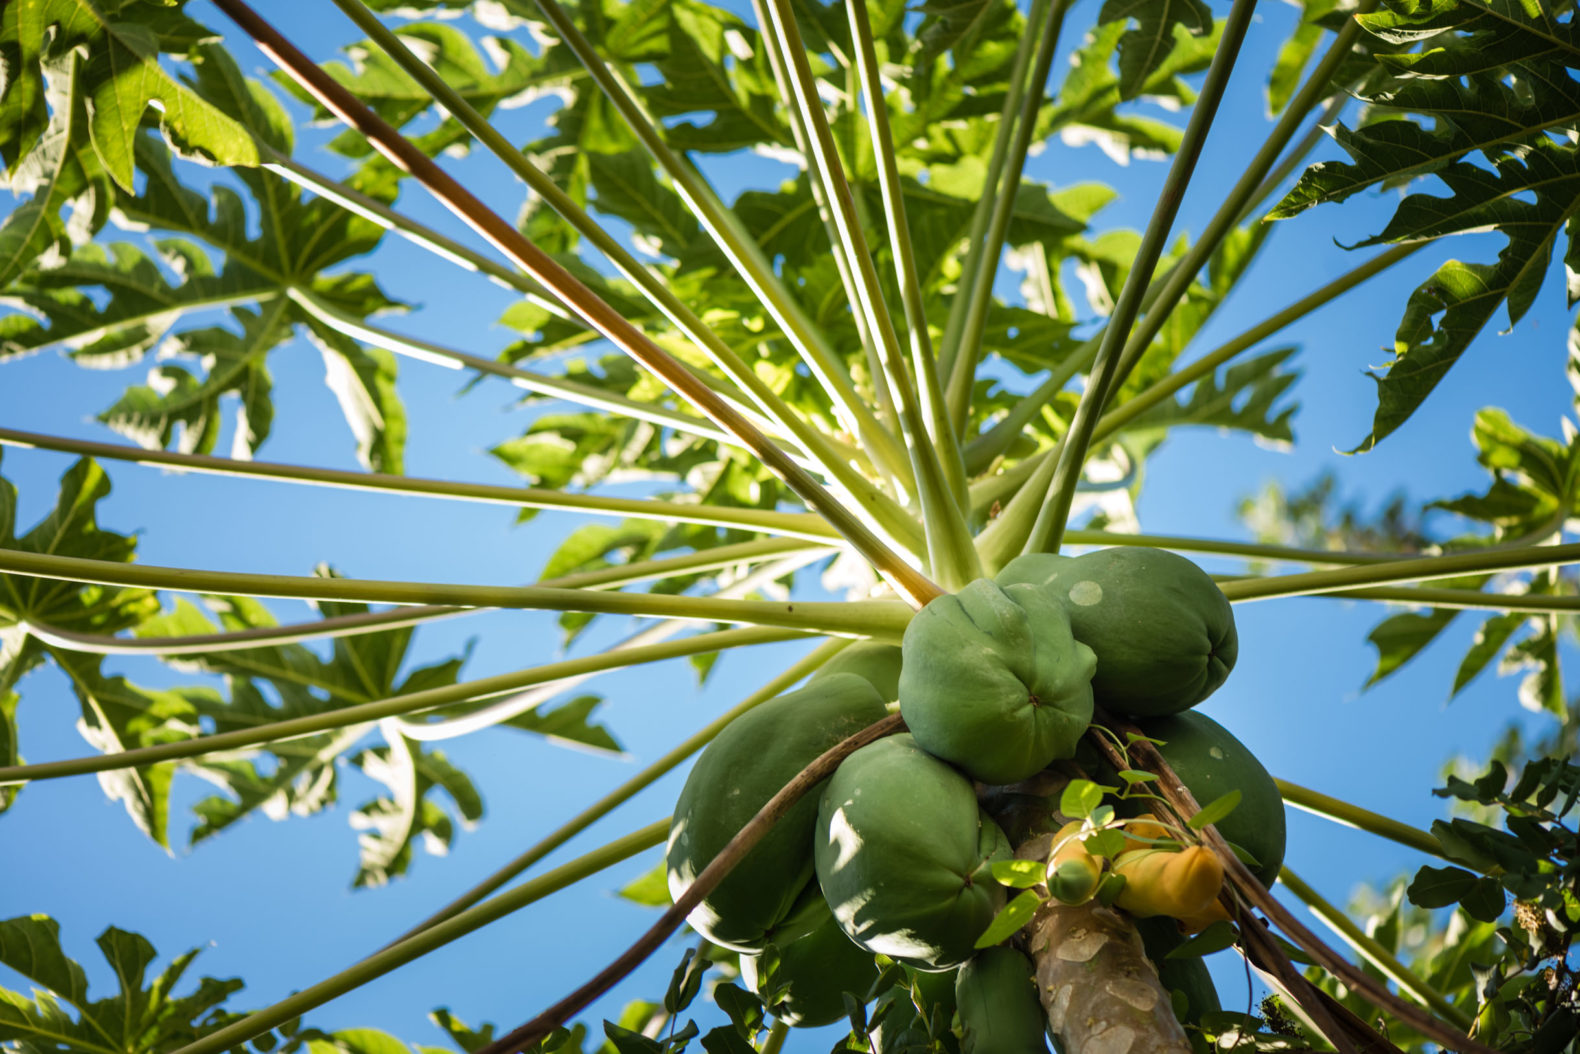 fresh-coconut-tree-juice-buchinger-wilhelmi-marbella-spain